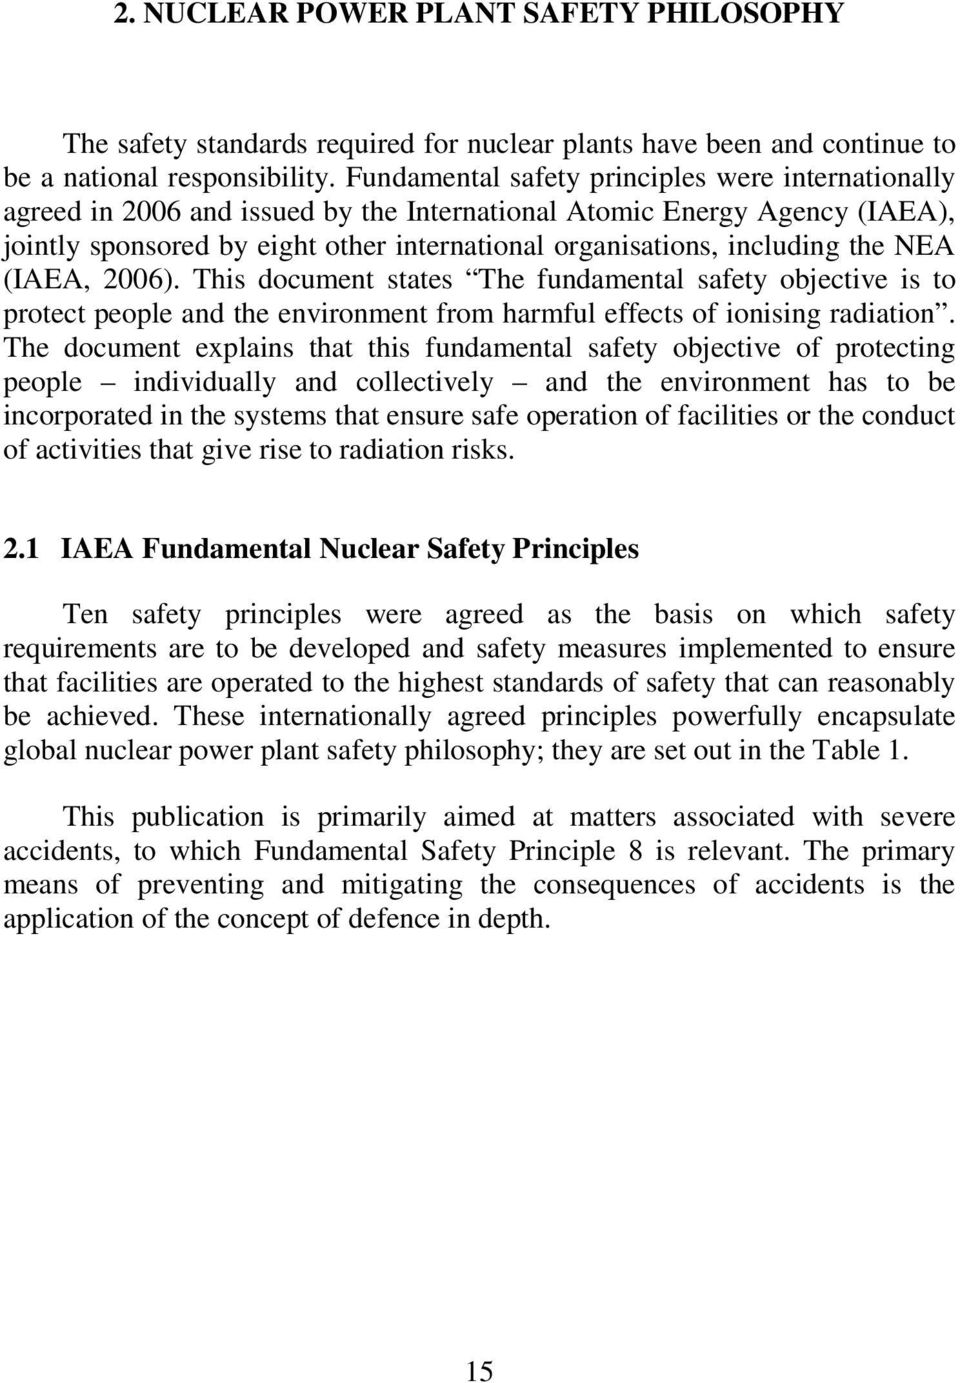 the NEA (IAEA, 2006). This document states The fundamental safety objective is to protect people and the environment from harmful effects of ionising radiation.